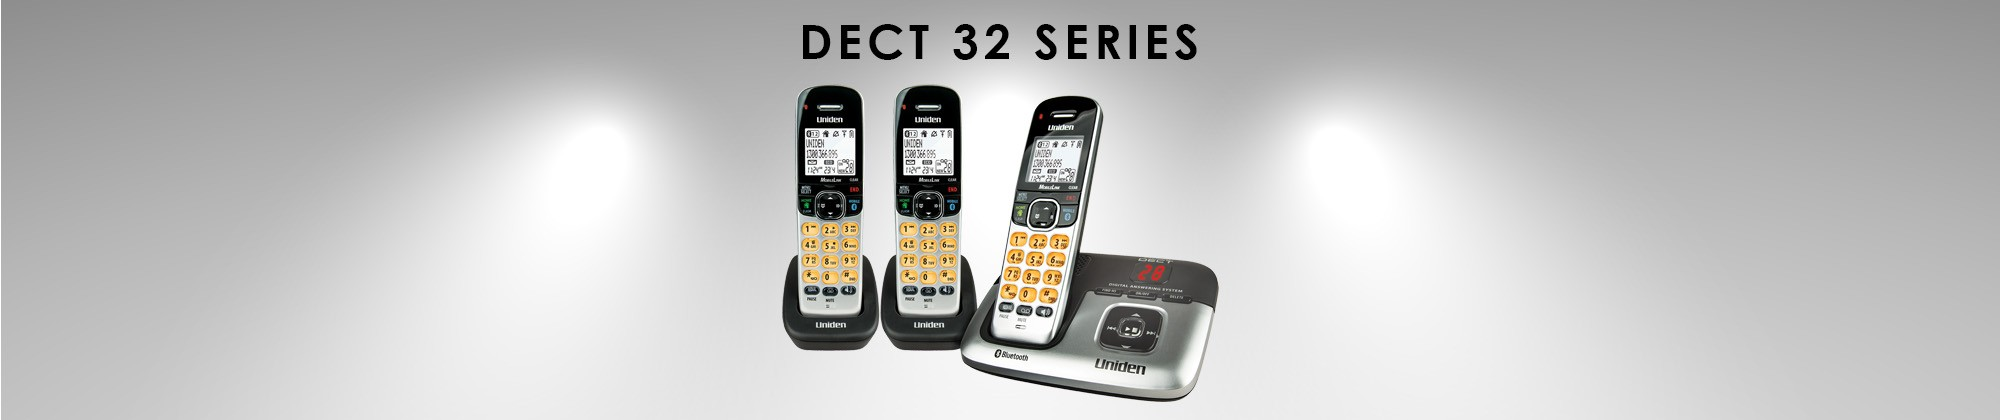 DECT 32 Series